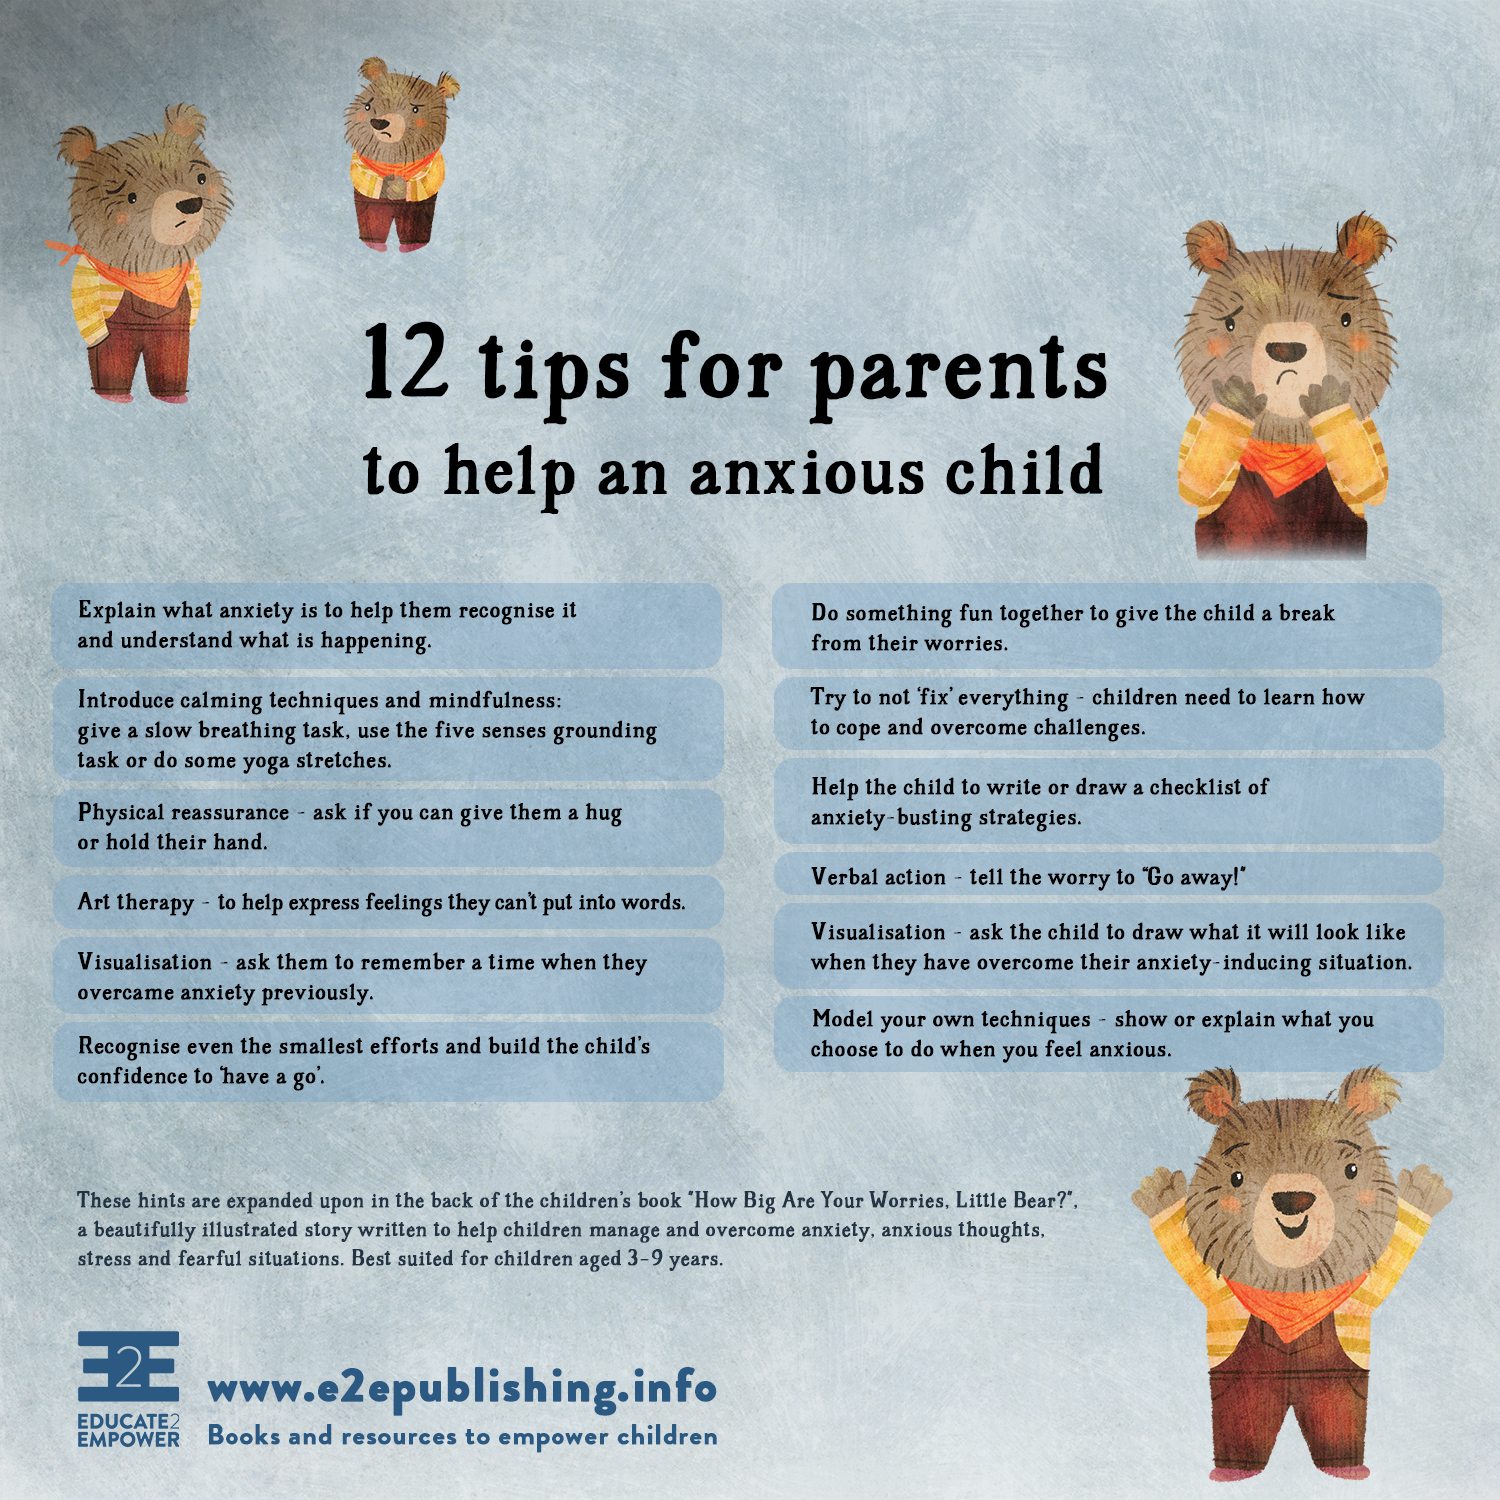 Empowering Kids In Anxious World >> Blog Educate2empower Publishing